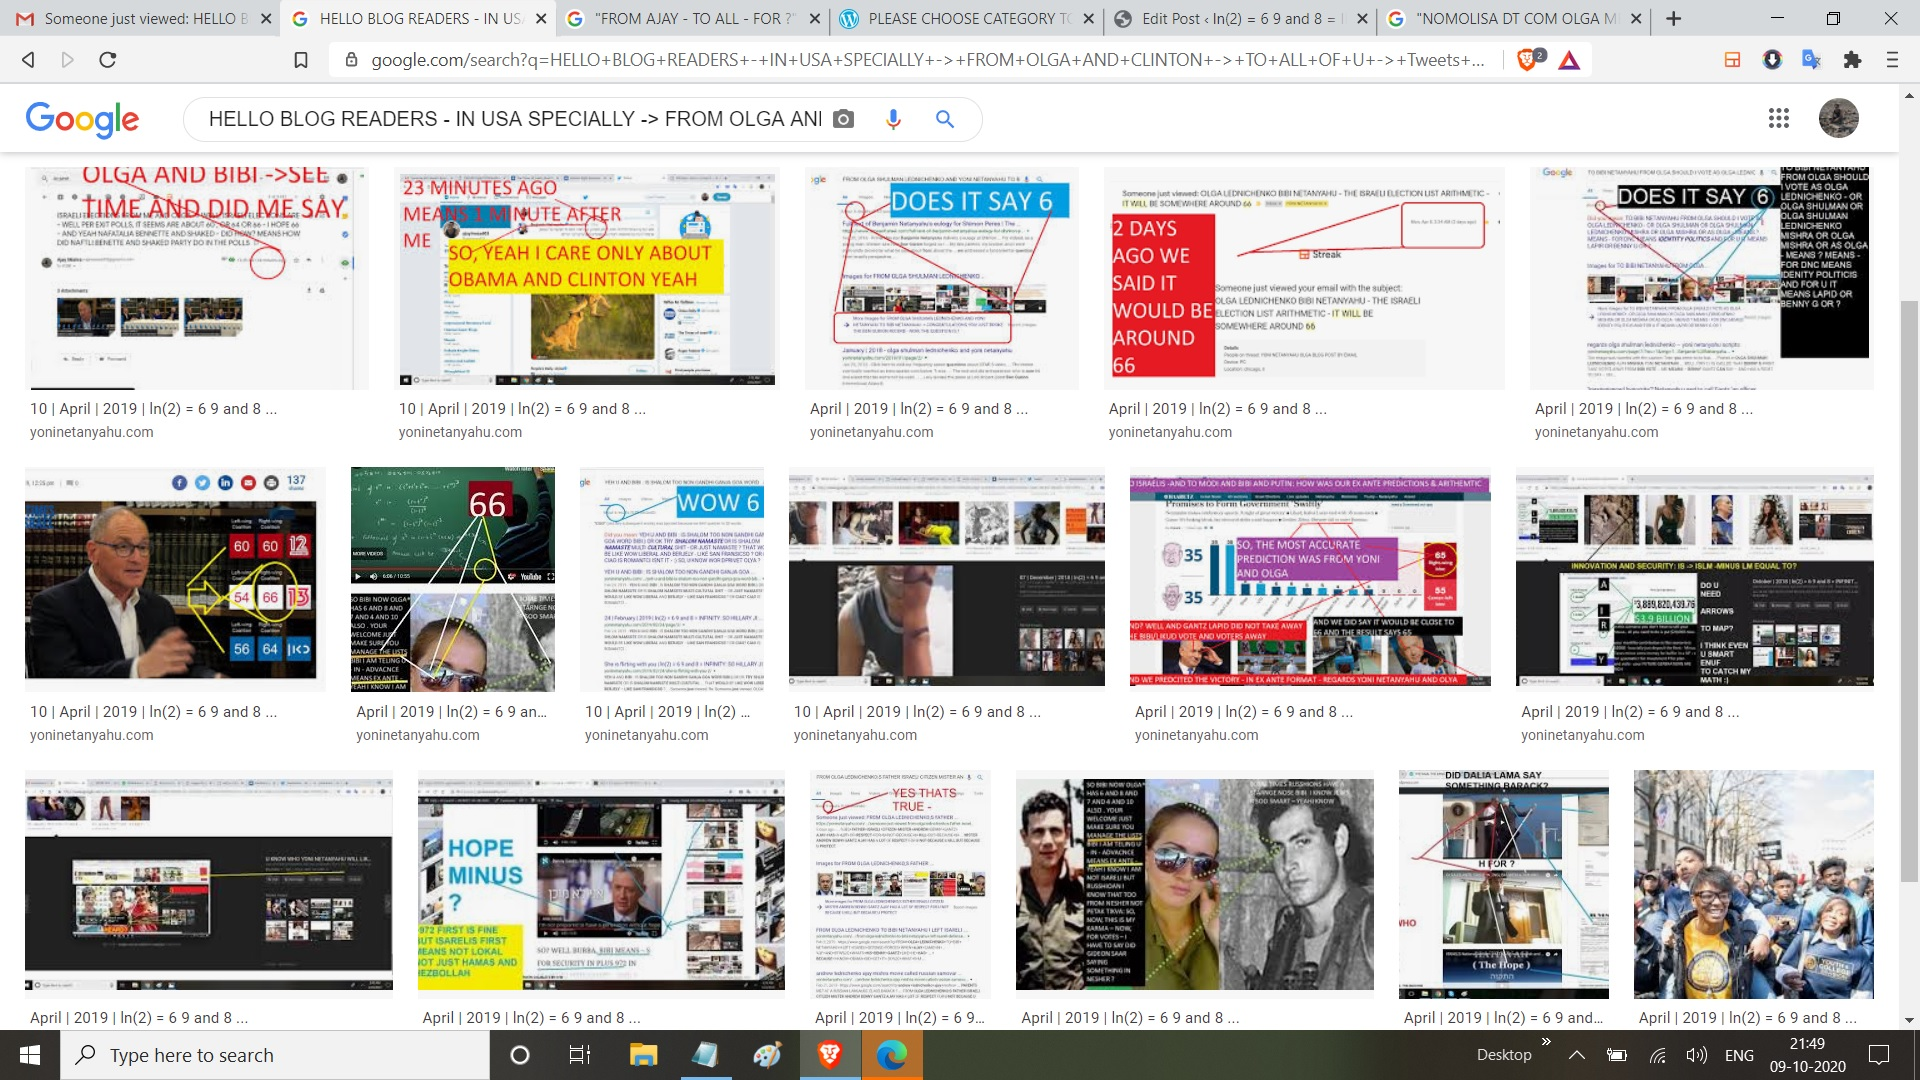 HELLO BLOG READERS - IN USA SPECIALLY -> FROM OLGA AND CLINTON -> TO ALL OF U -> Tweets New conversation ajayinsead03  @ajayinsead03 9m9 minutes ago More @BillClinton @BarackObama -> SEE -> SEE THIS IS - MULTI NOMIAL THEOREM ALMOST IMPOSSIBLE COALTIONS ->ITS IS @davidaxelrod => HENCE MEANS BECAUSE PLUS THEREFORE -> @RahmEmanuel -> NOW, PLEASE undetrstand this is PLUS 972 MATHS 1 reply 0 retweets 0 likes Reply 1 Retweet Like View Tweet activity Show this thread ajayinsead03  @ajayinsead03 3m3 minutes ago More @BarackObama @HillaryClinton @BillClinton SINCE IT TAKES A CLINTON TO EXPLAIN -> I ME MINE - PERCENATGES VOTED FOR THEIR PROXIES FOR THE I ME MINE TODAY IN THE MOST WEIRD, MOST DIFFUCLT ISARELI ELECTIONS - IN MODERN HISTORY.. AND HERE WE PREDICTED - IN ADAVNCE 1 reply 0 retweets 0 likes Reply 1 Retweet Like View Tweet activity ajayinsead03  @ajayinsead03 25s25 seconds ago More @BarackObama FYI, IT TOOK ME MORE THAN 4 DECADES TO LEARN JEW LANGUAGE AND JEW ARITHMETIC - AND NOW @HillaryClinton WELL, NOW, I AM GOING OFF OF TIWTTER - AND ? @davidaxelrod -> @BillClinton -> DNC DONT SCREW IT UP THIS TIME.. SERIOUSLY WARNING TRUMP MAY WIN AGAIN IN 2020 .